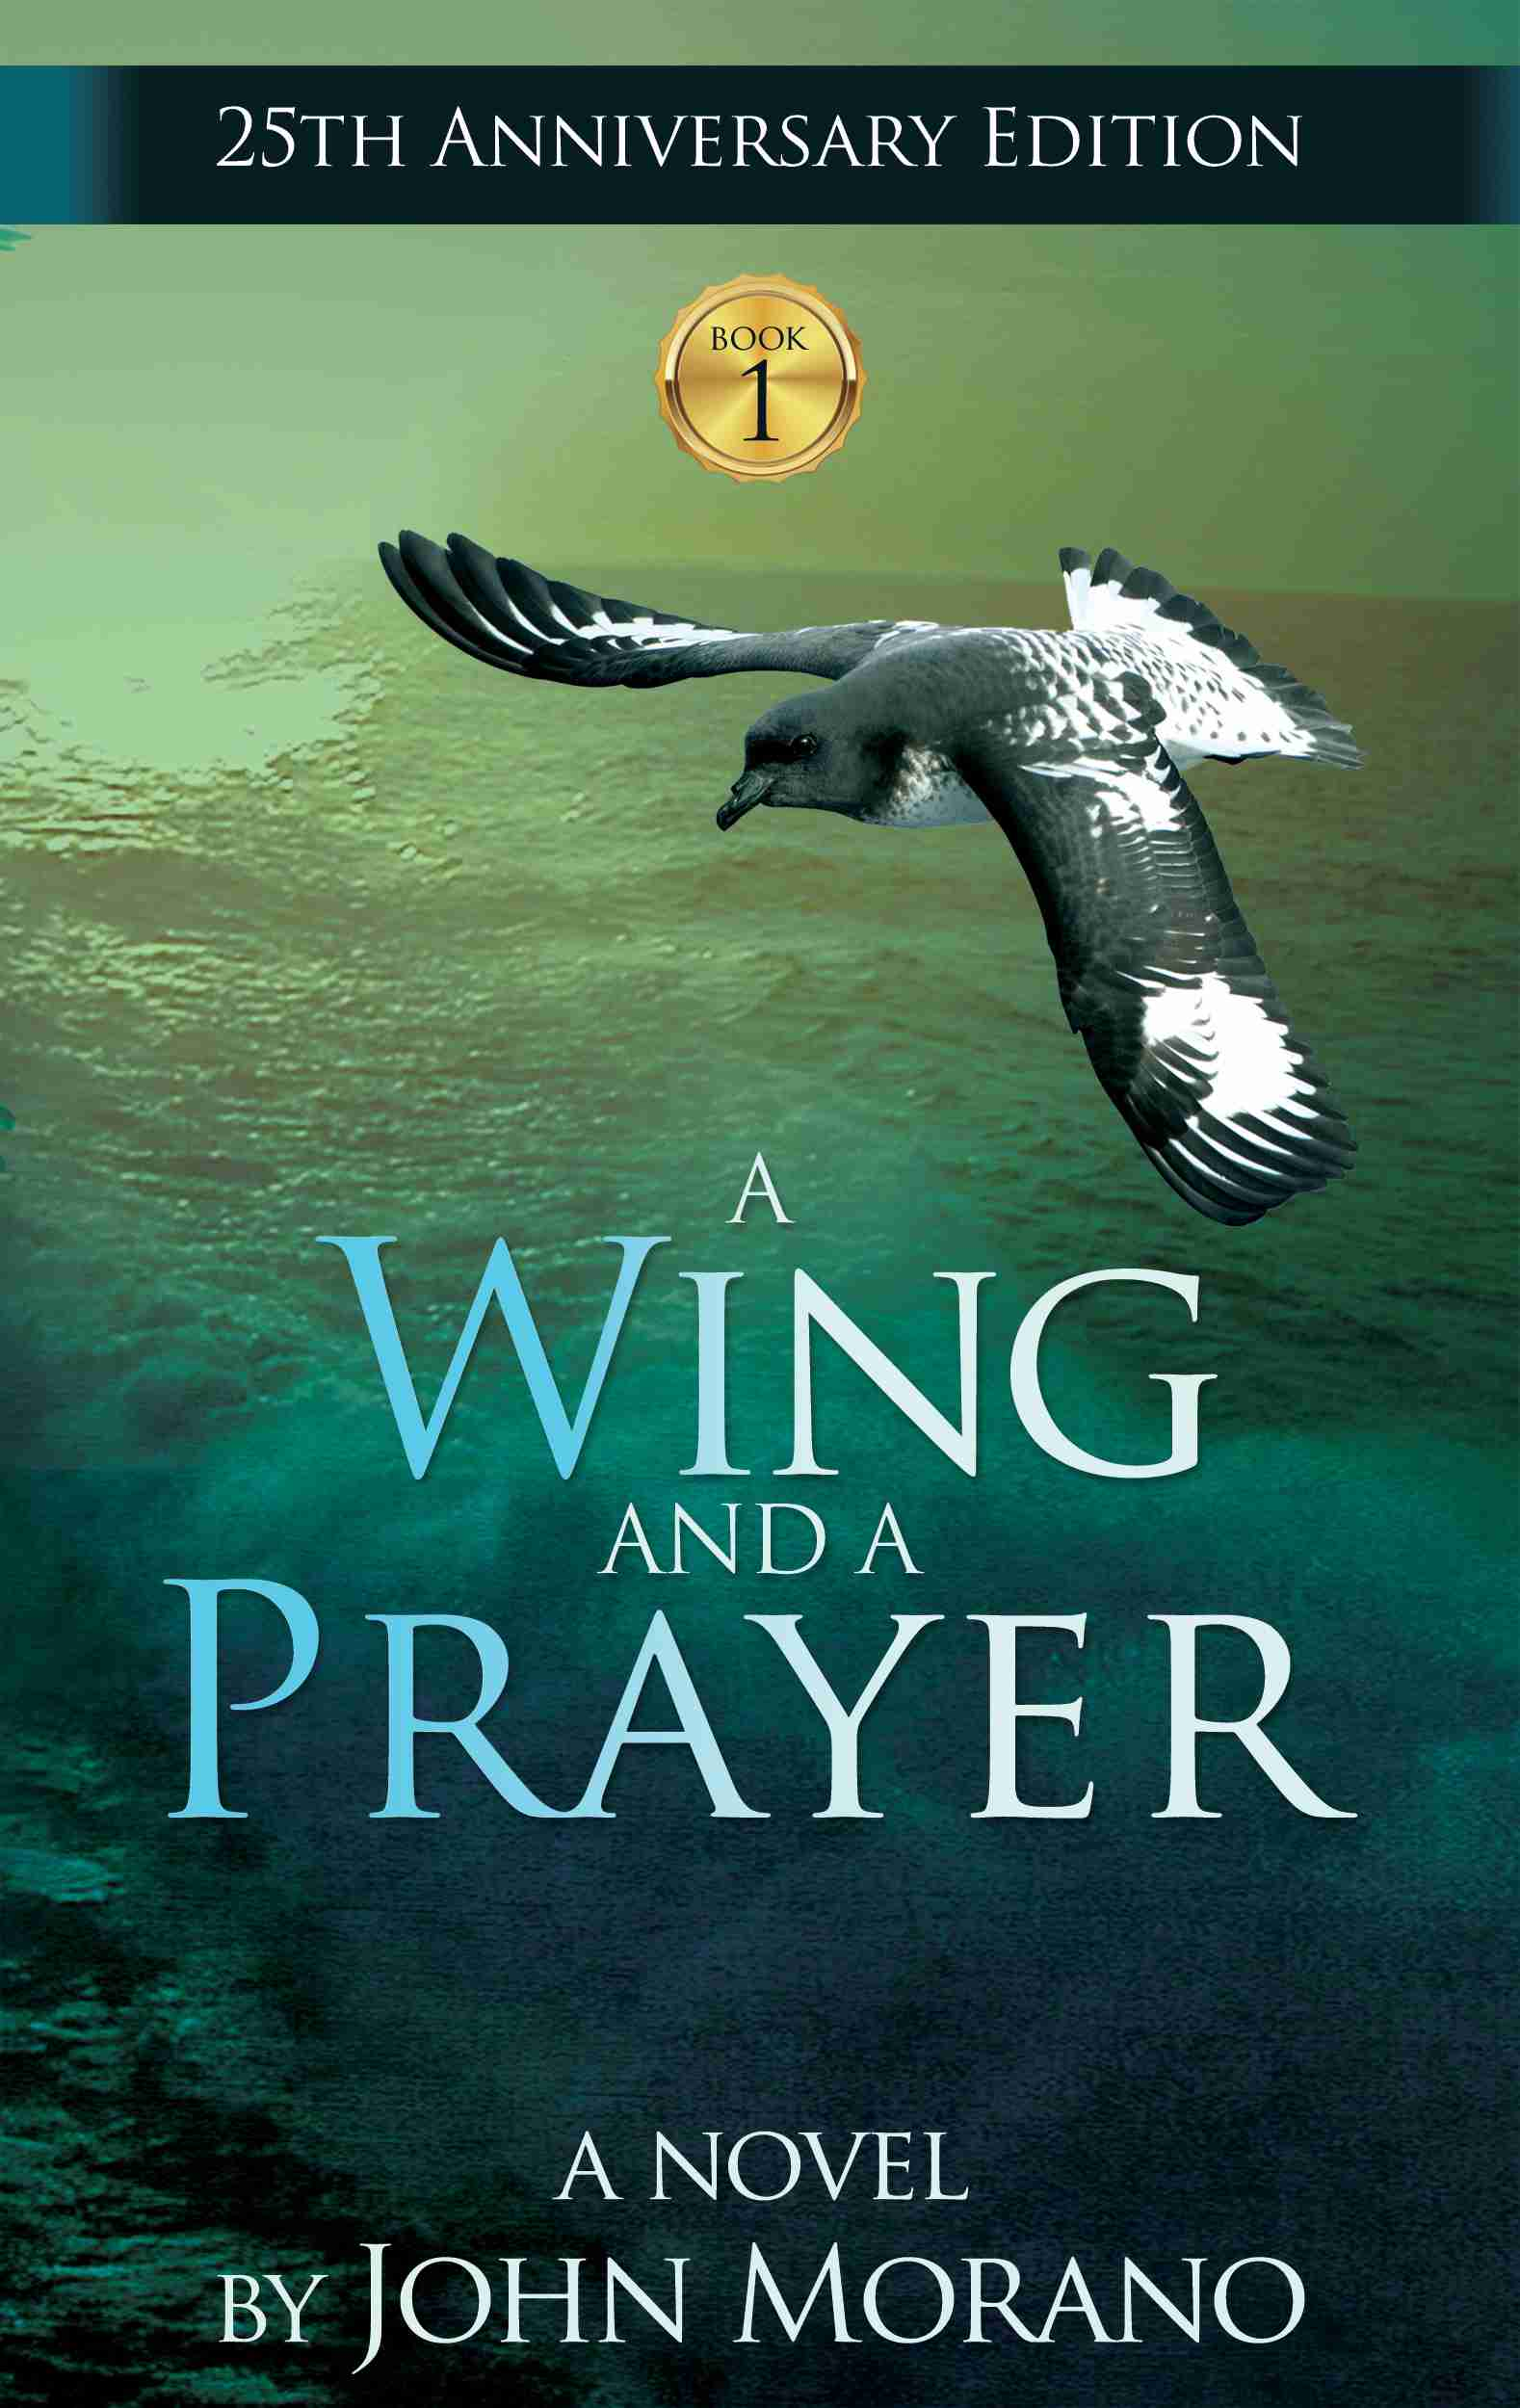 A wing and a prayer John Marano